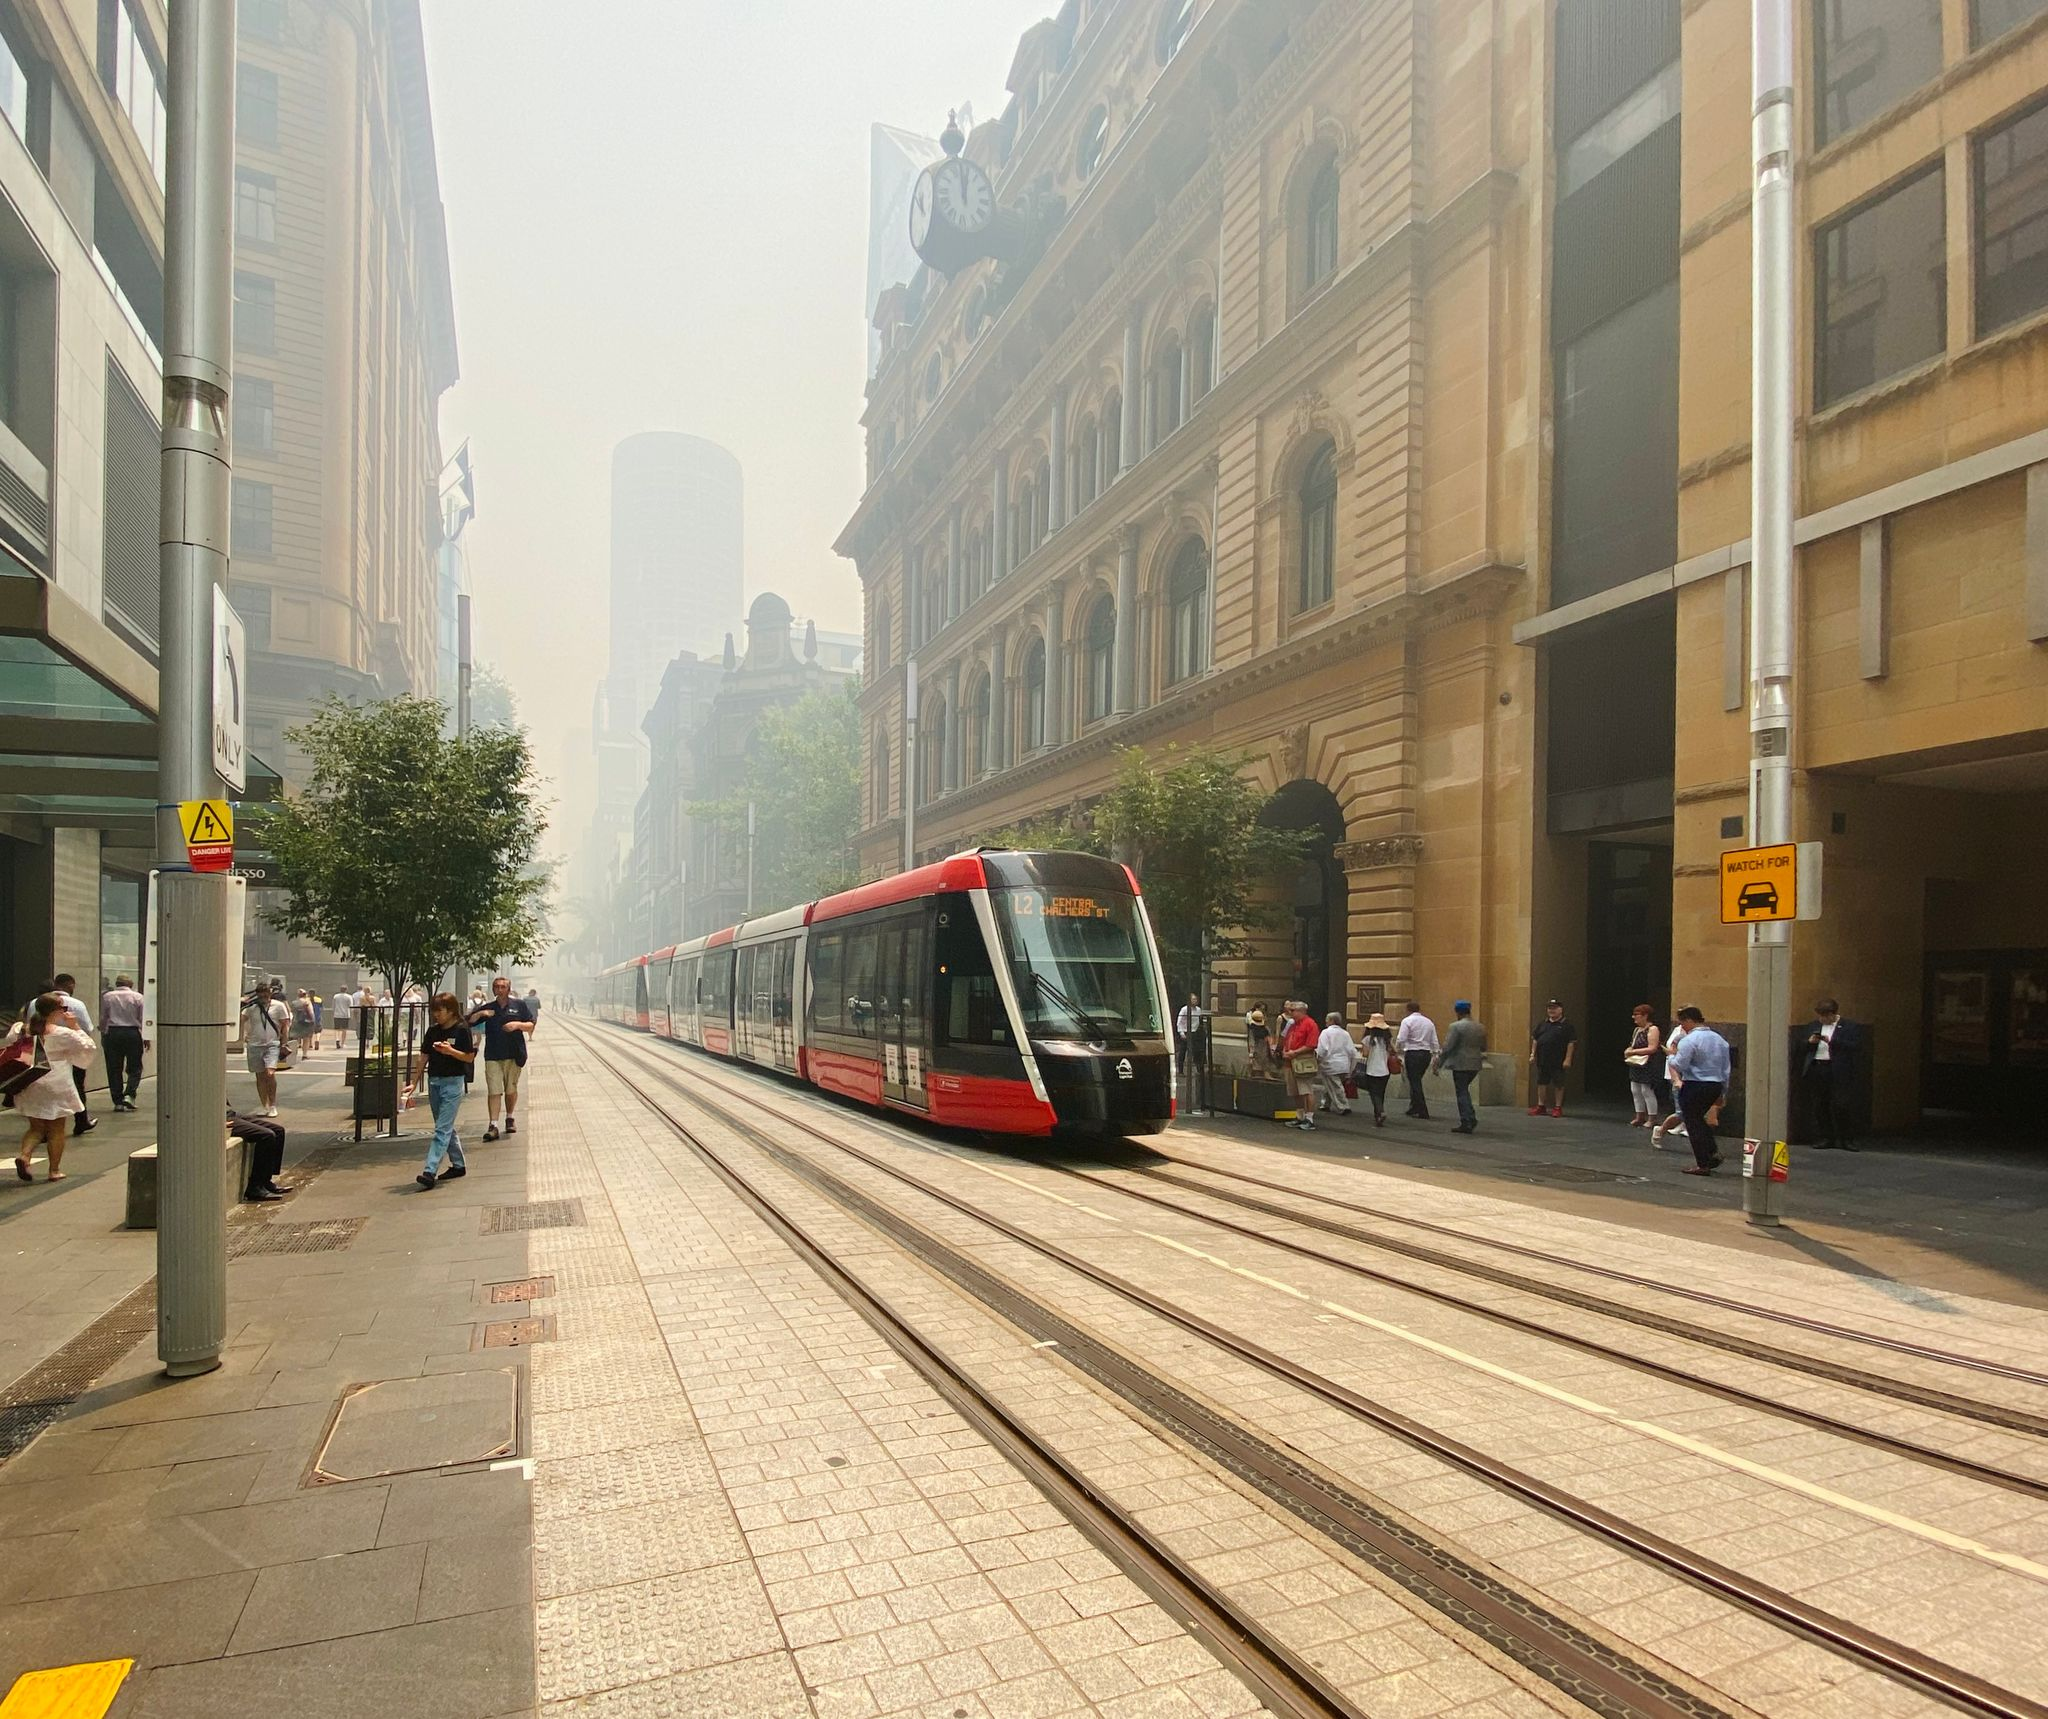 A photo looking down George St in Sydney's CBD. A tram is moving down the street and the entire scene is hazy and the distance is invisible thanks to the amount of bushfire smoke in the air.